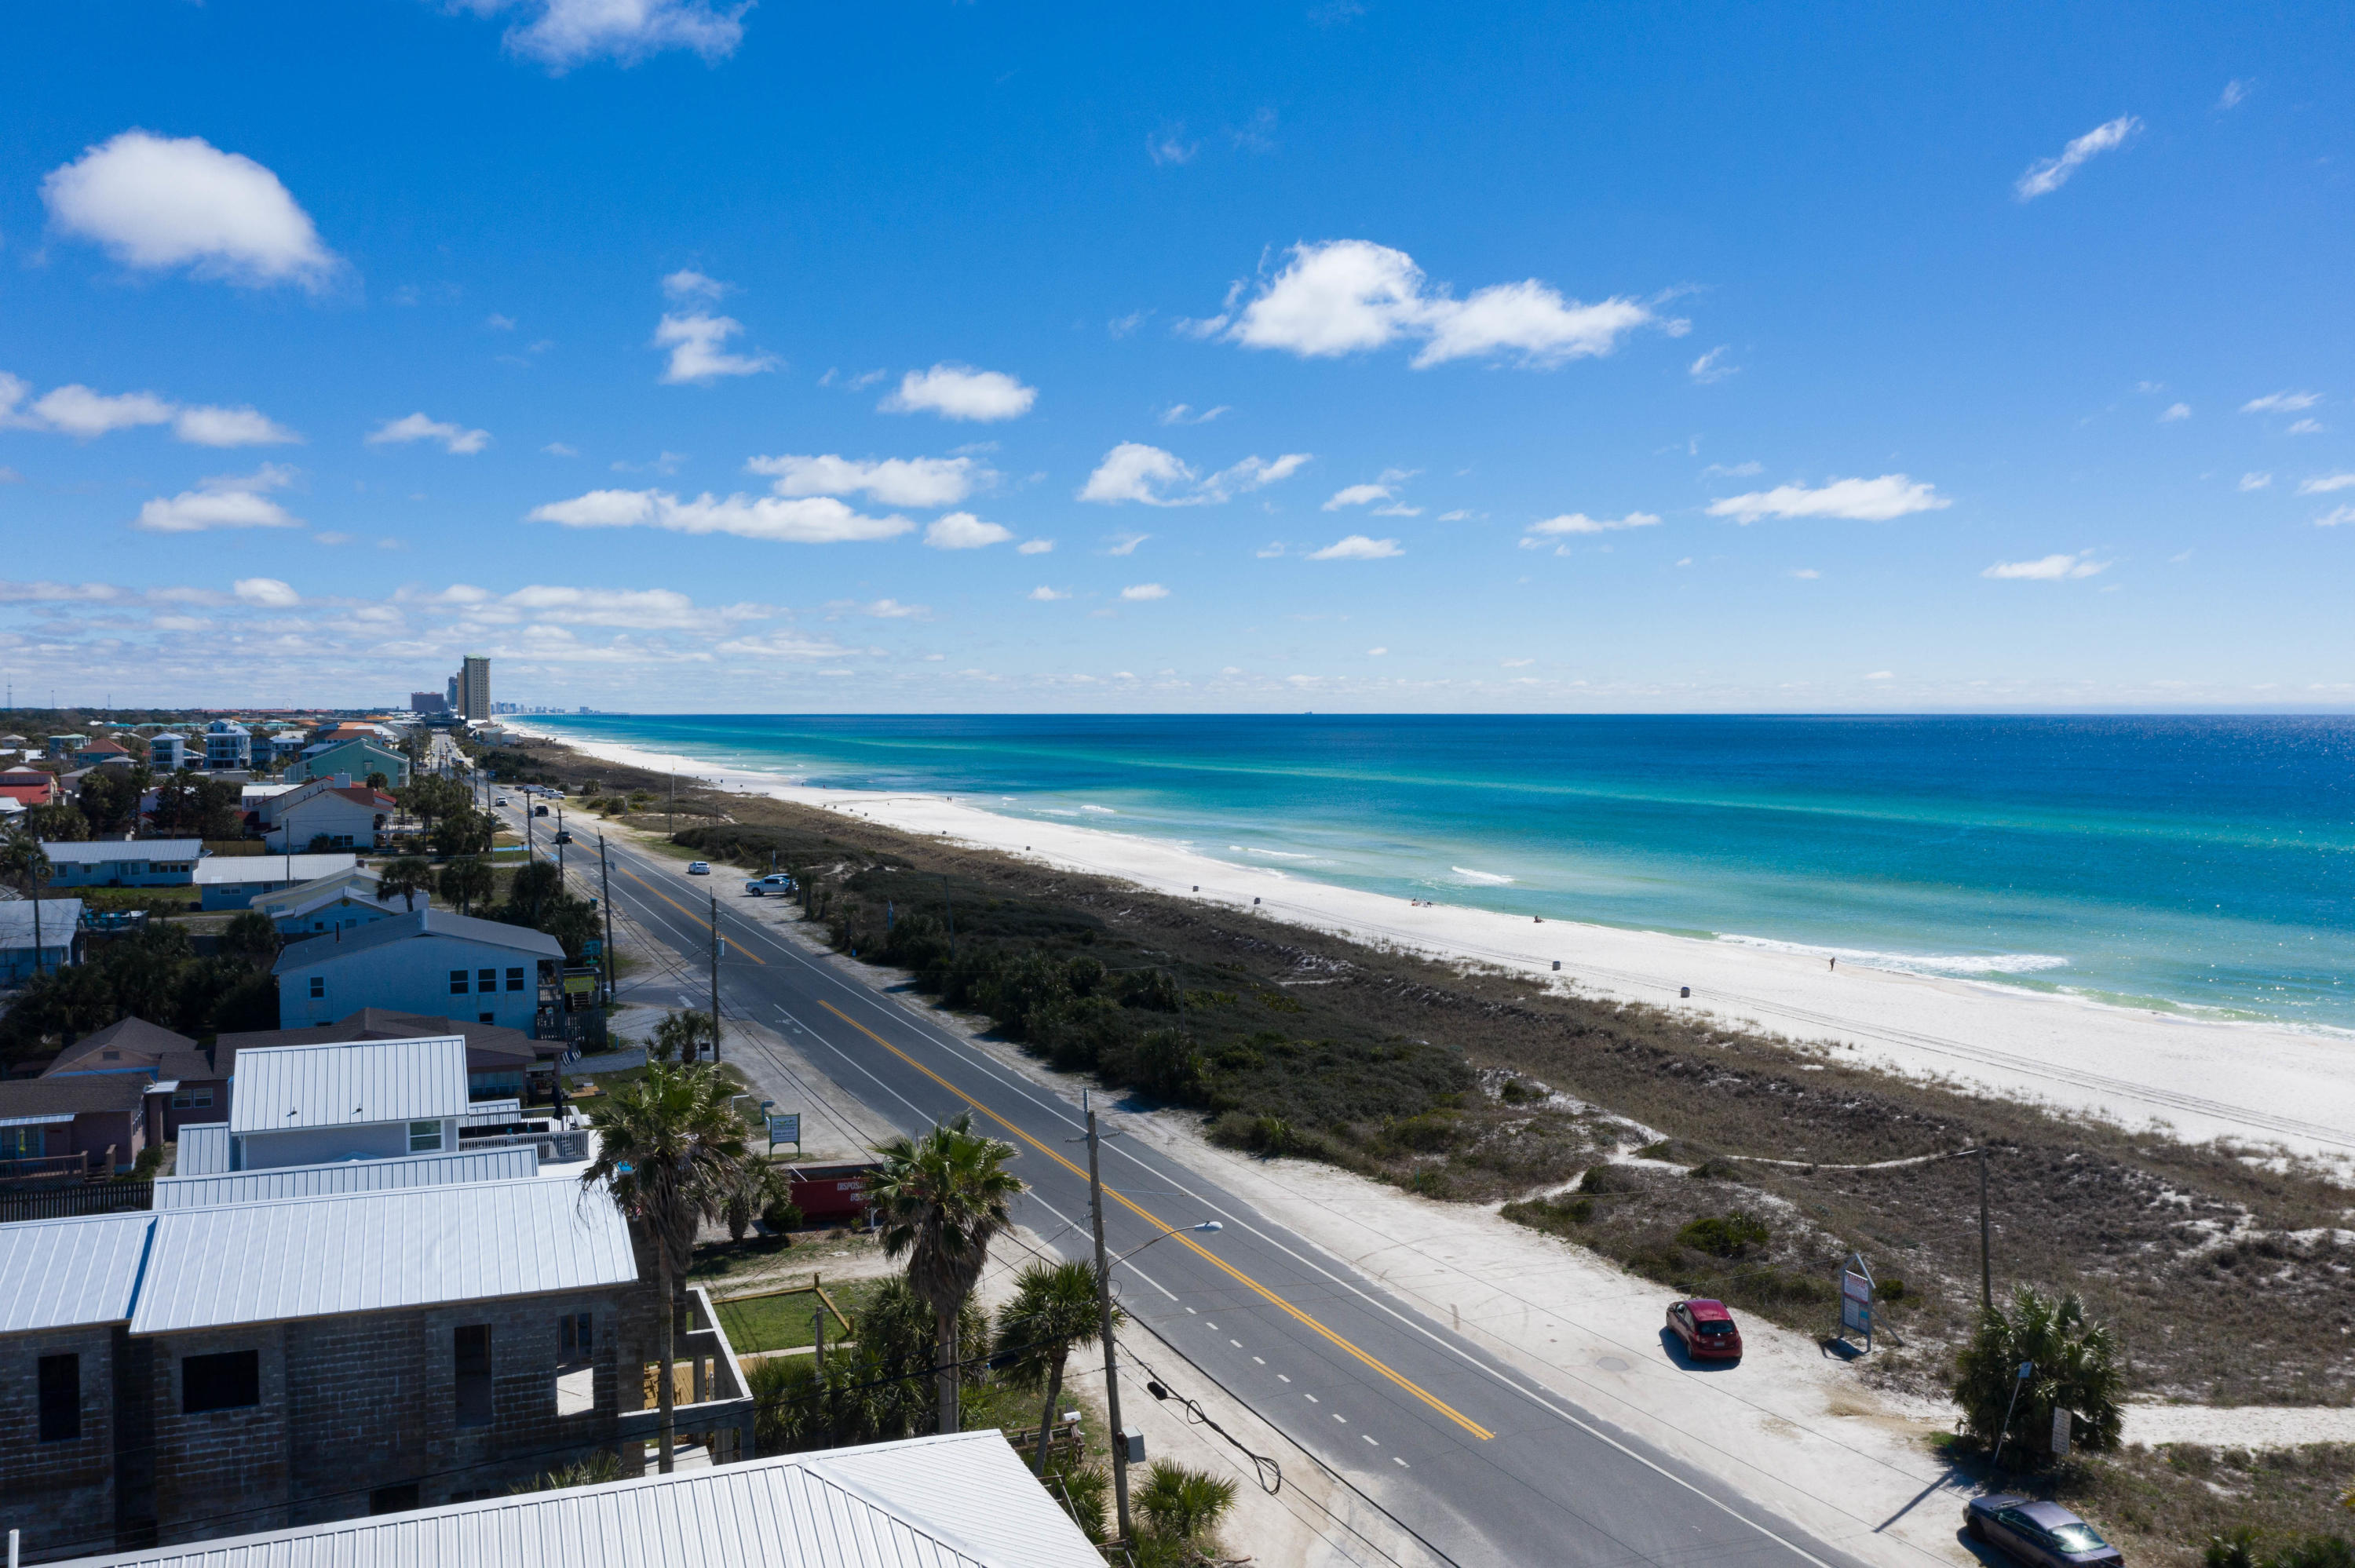 Photo of home for sale in Panama City Beach FL